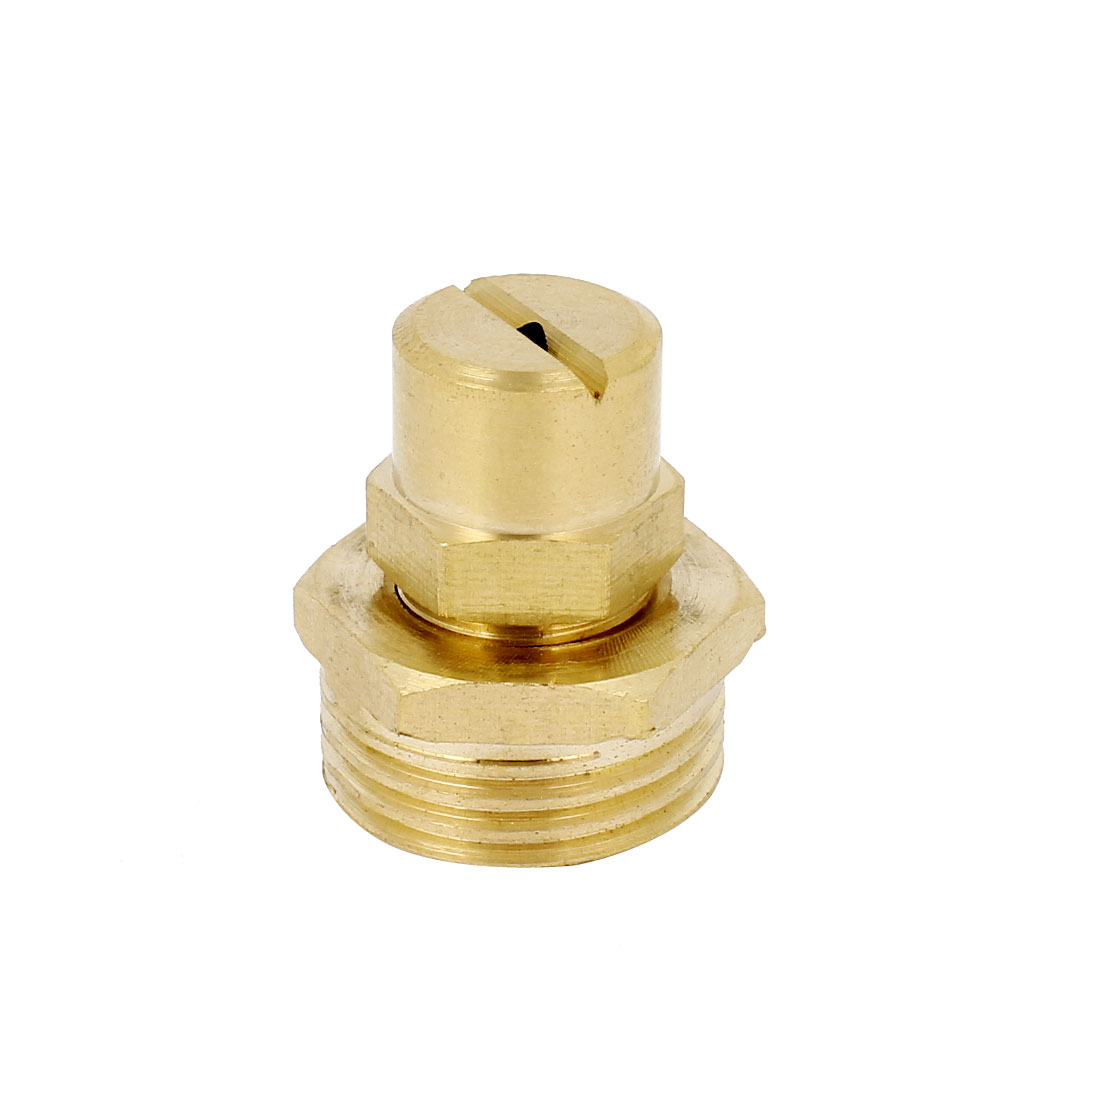 Cooling Dust Cleaning 21mm Male Thread Water Mist Spray Head Nozzle Brass Tone